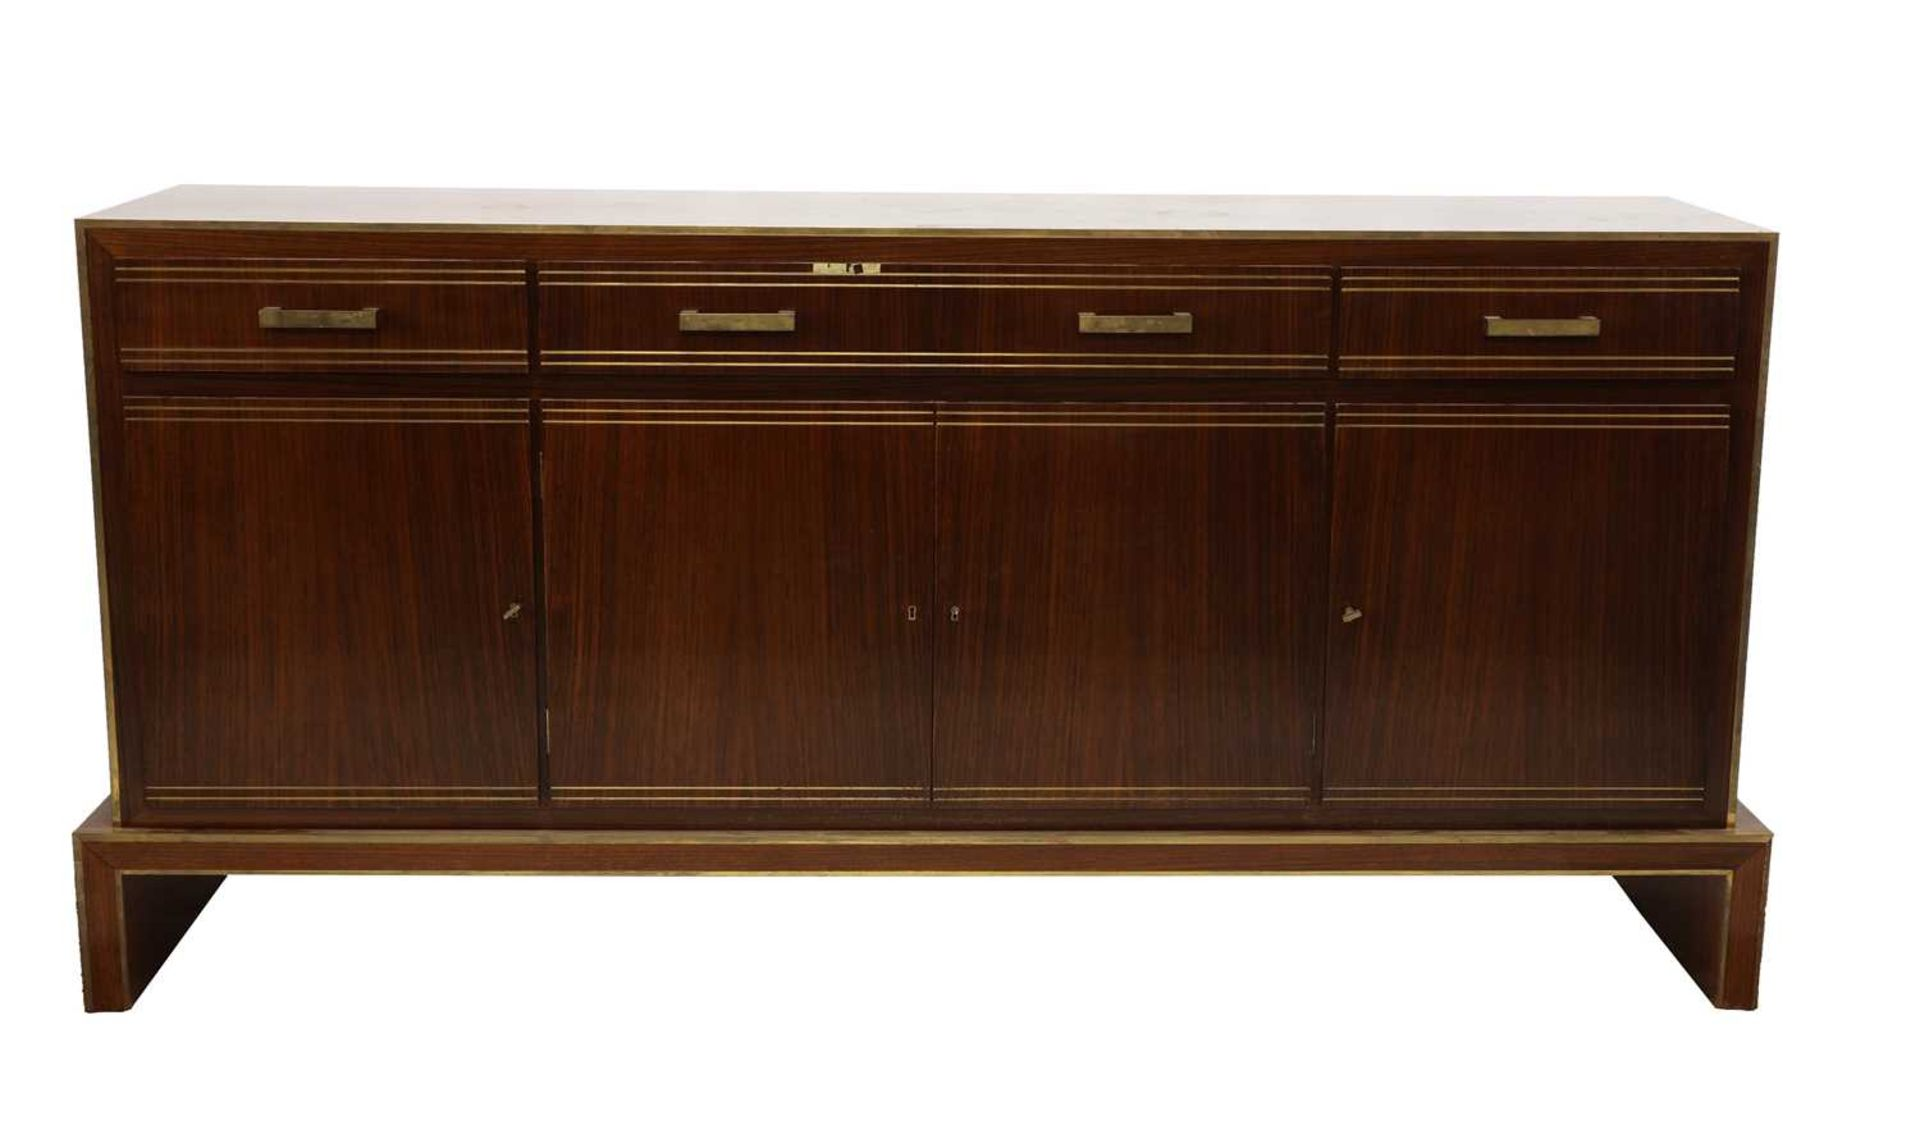 An Indian rosewood dining suite, - Image 2 of 10